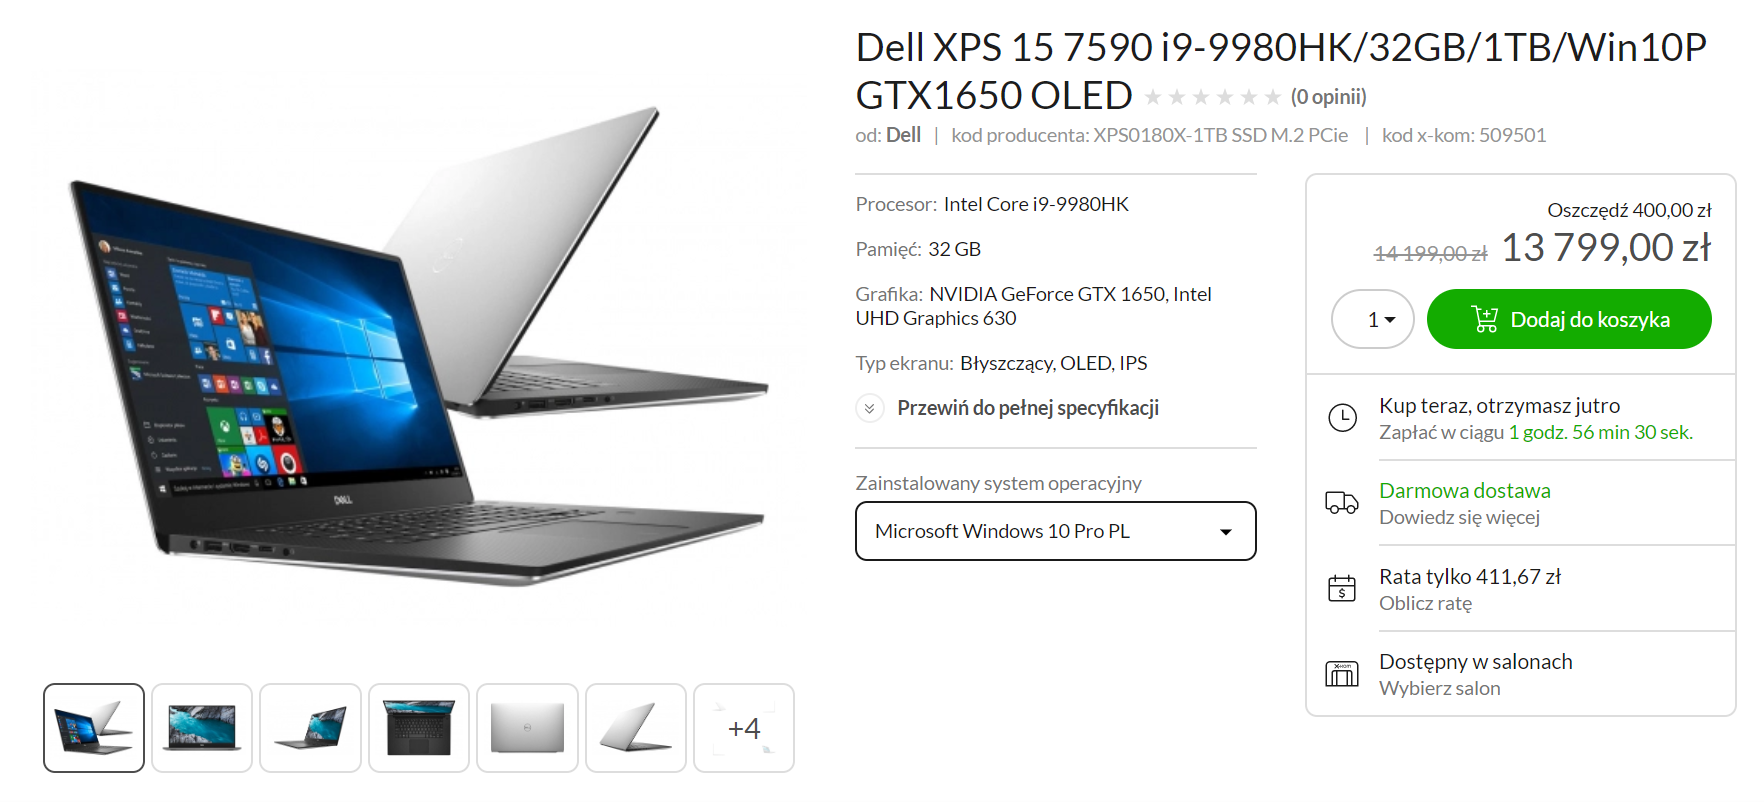 MacBook Pro 16 czy Dell XPS 15